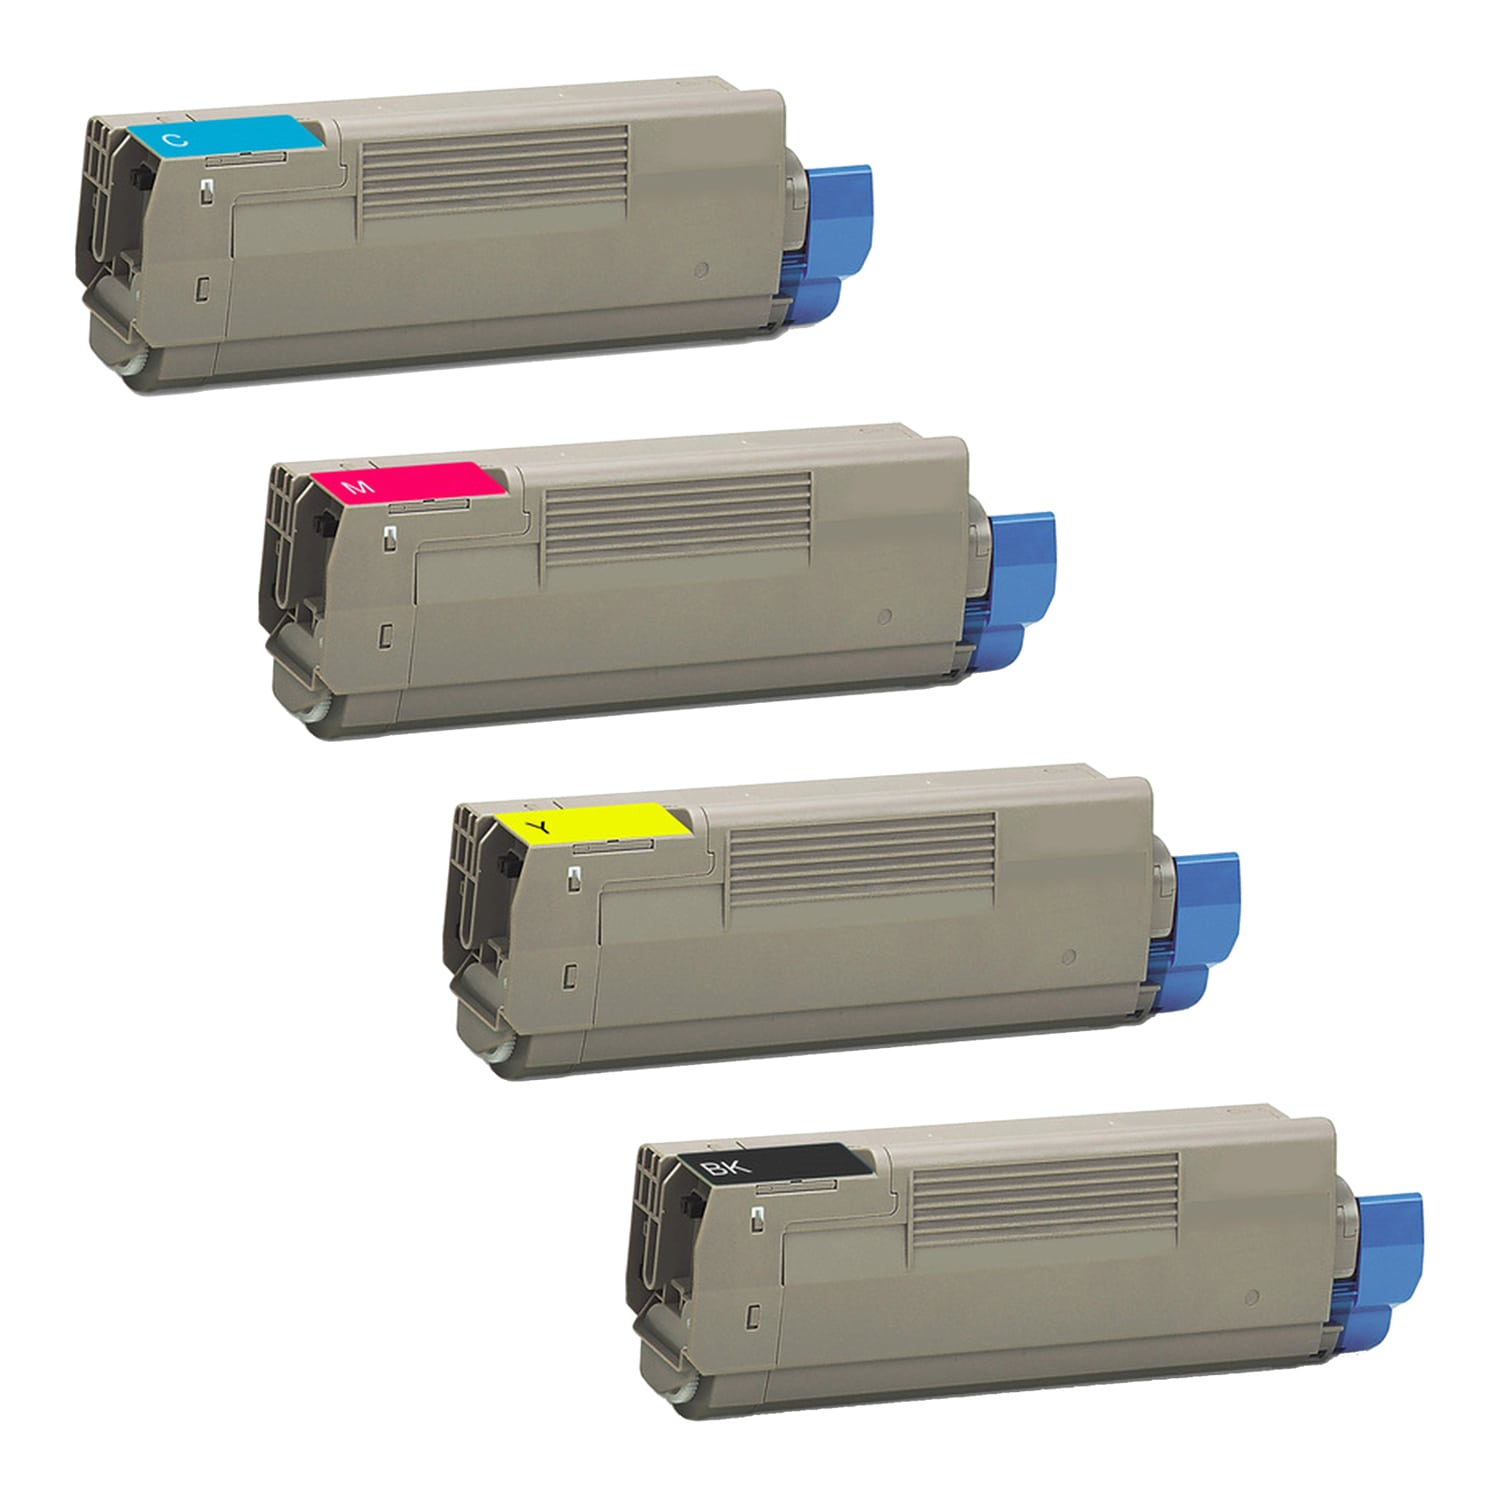 Remanufactured Okidata Toner CartridgeBundlepack C3100-C3200 CMYK High Capacity Pack - 4 Cartridges